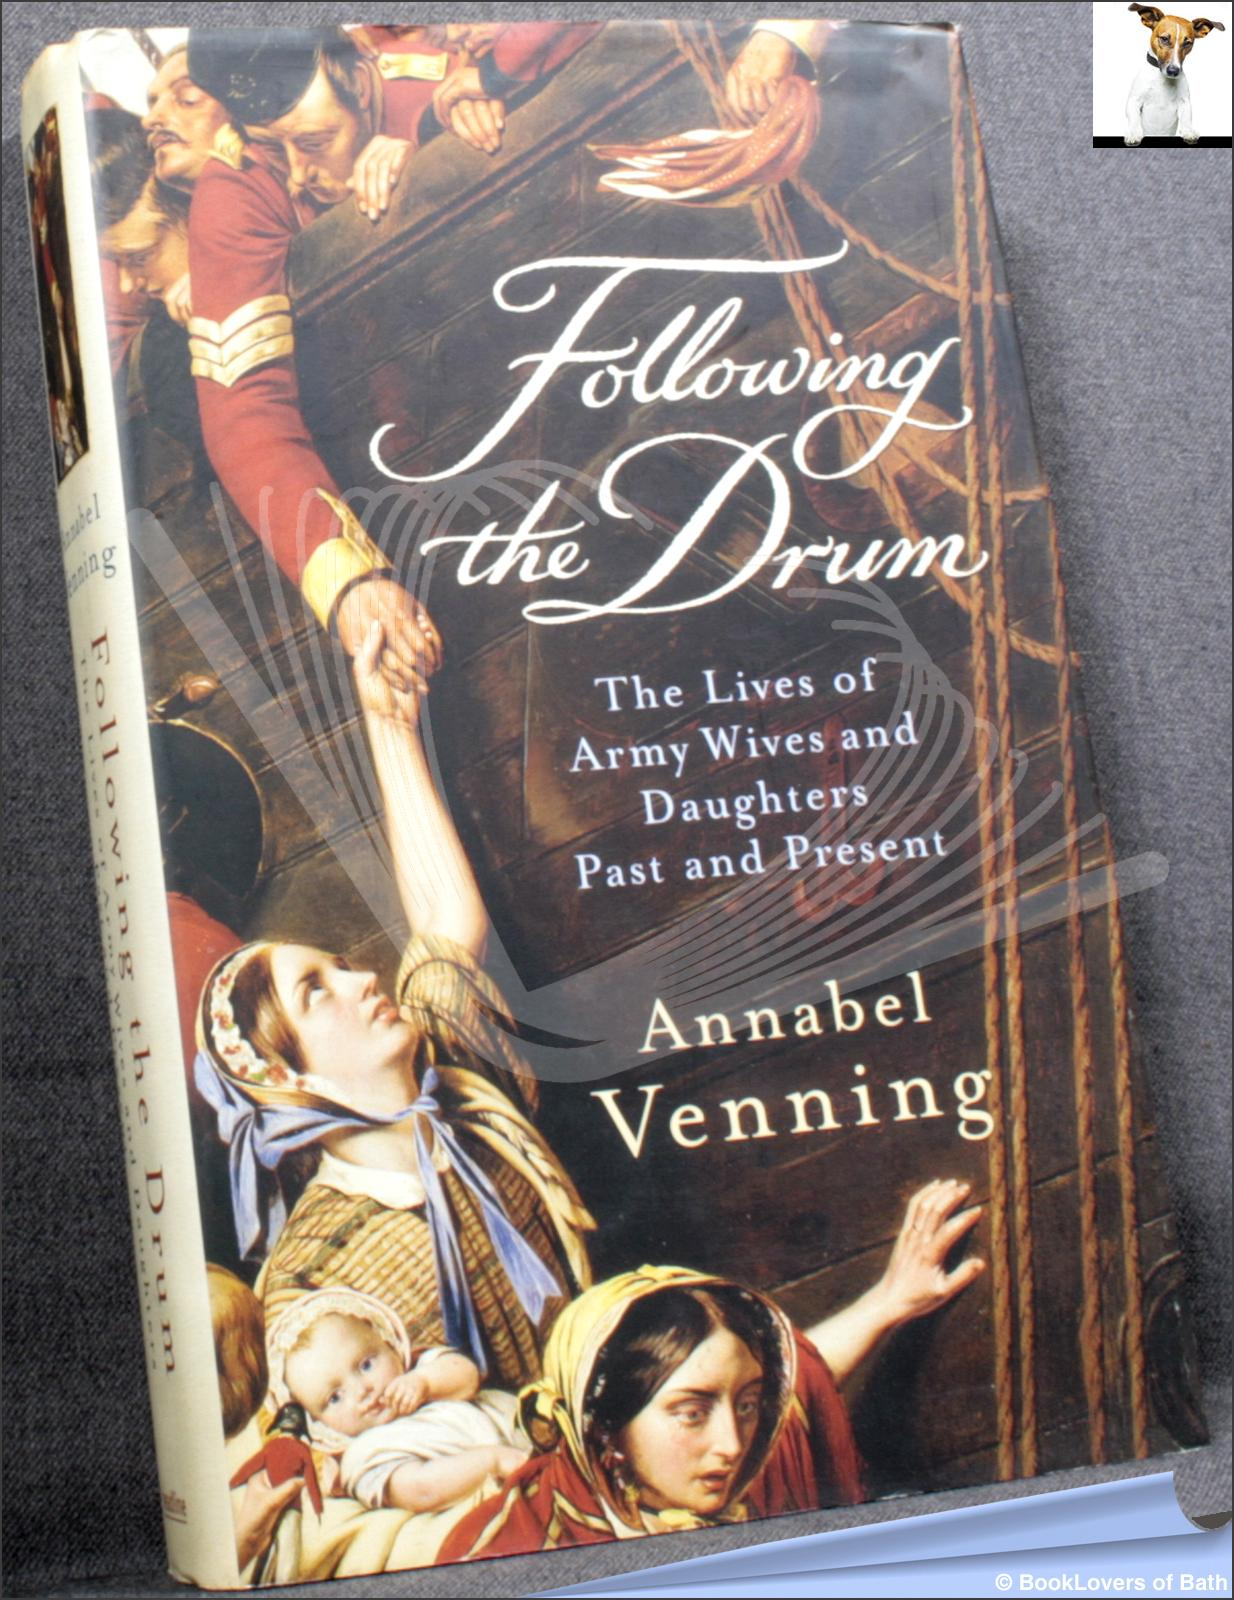 Following the Drum: The Lives of Army Wives and Daughters, Past and Present - Annabel Venning